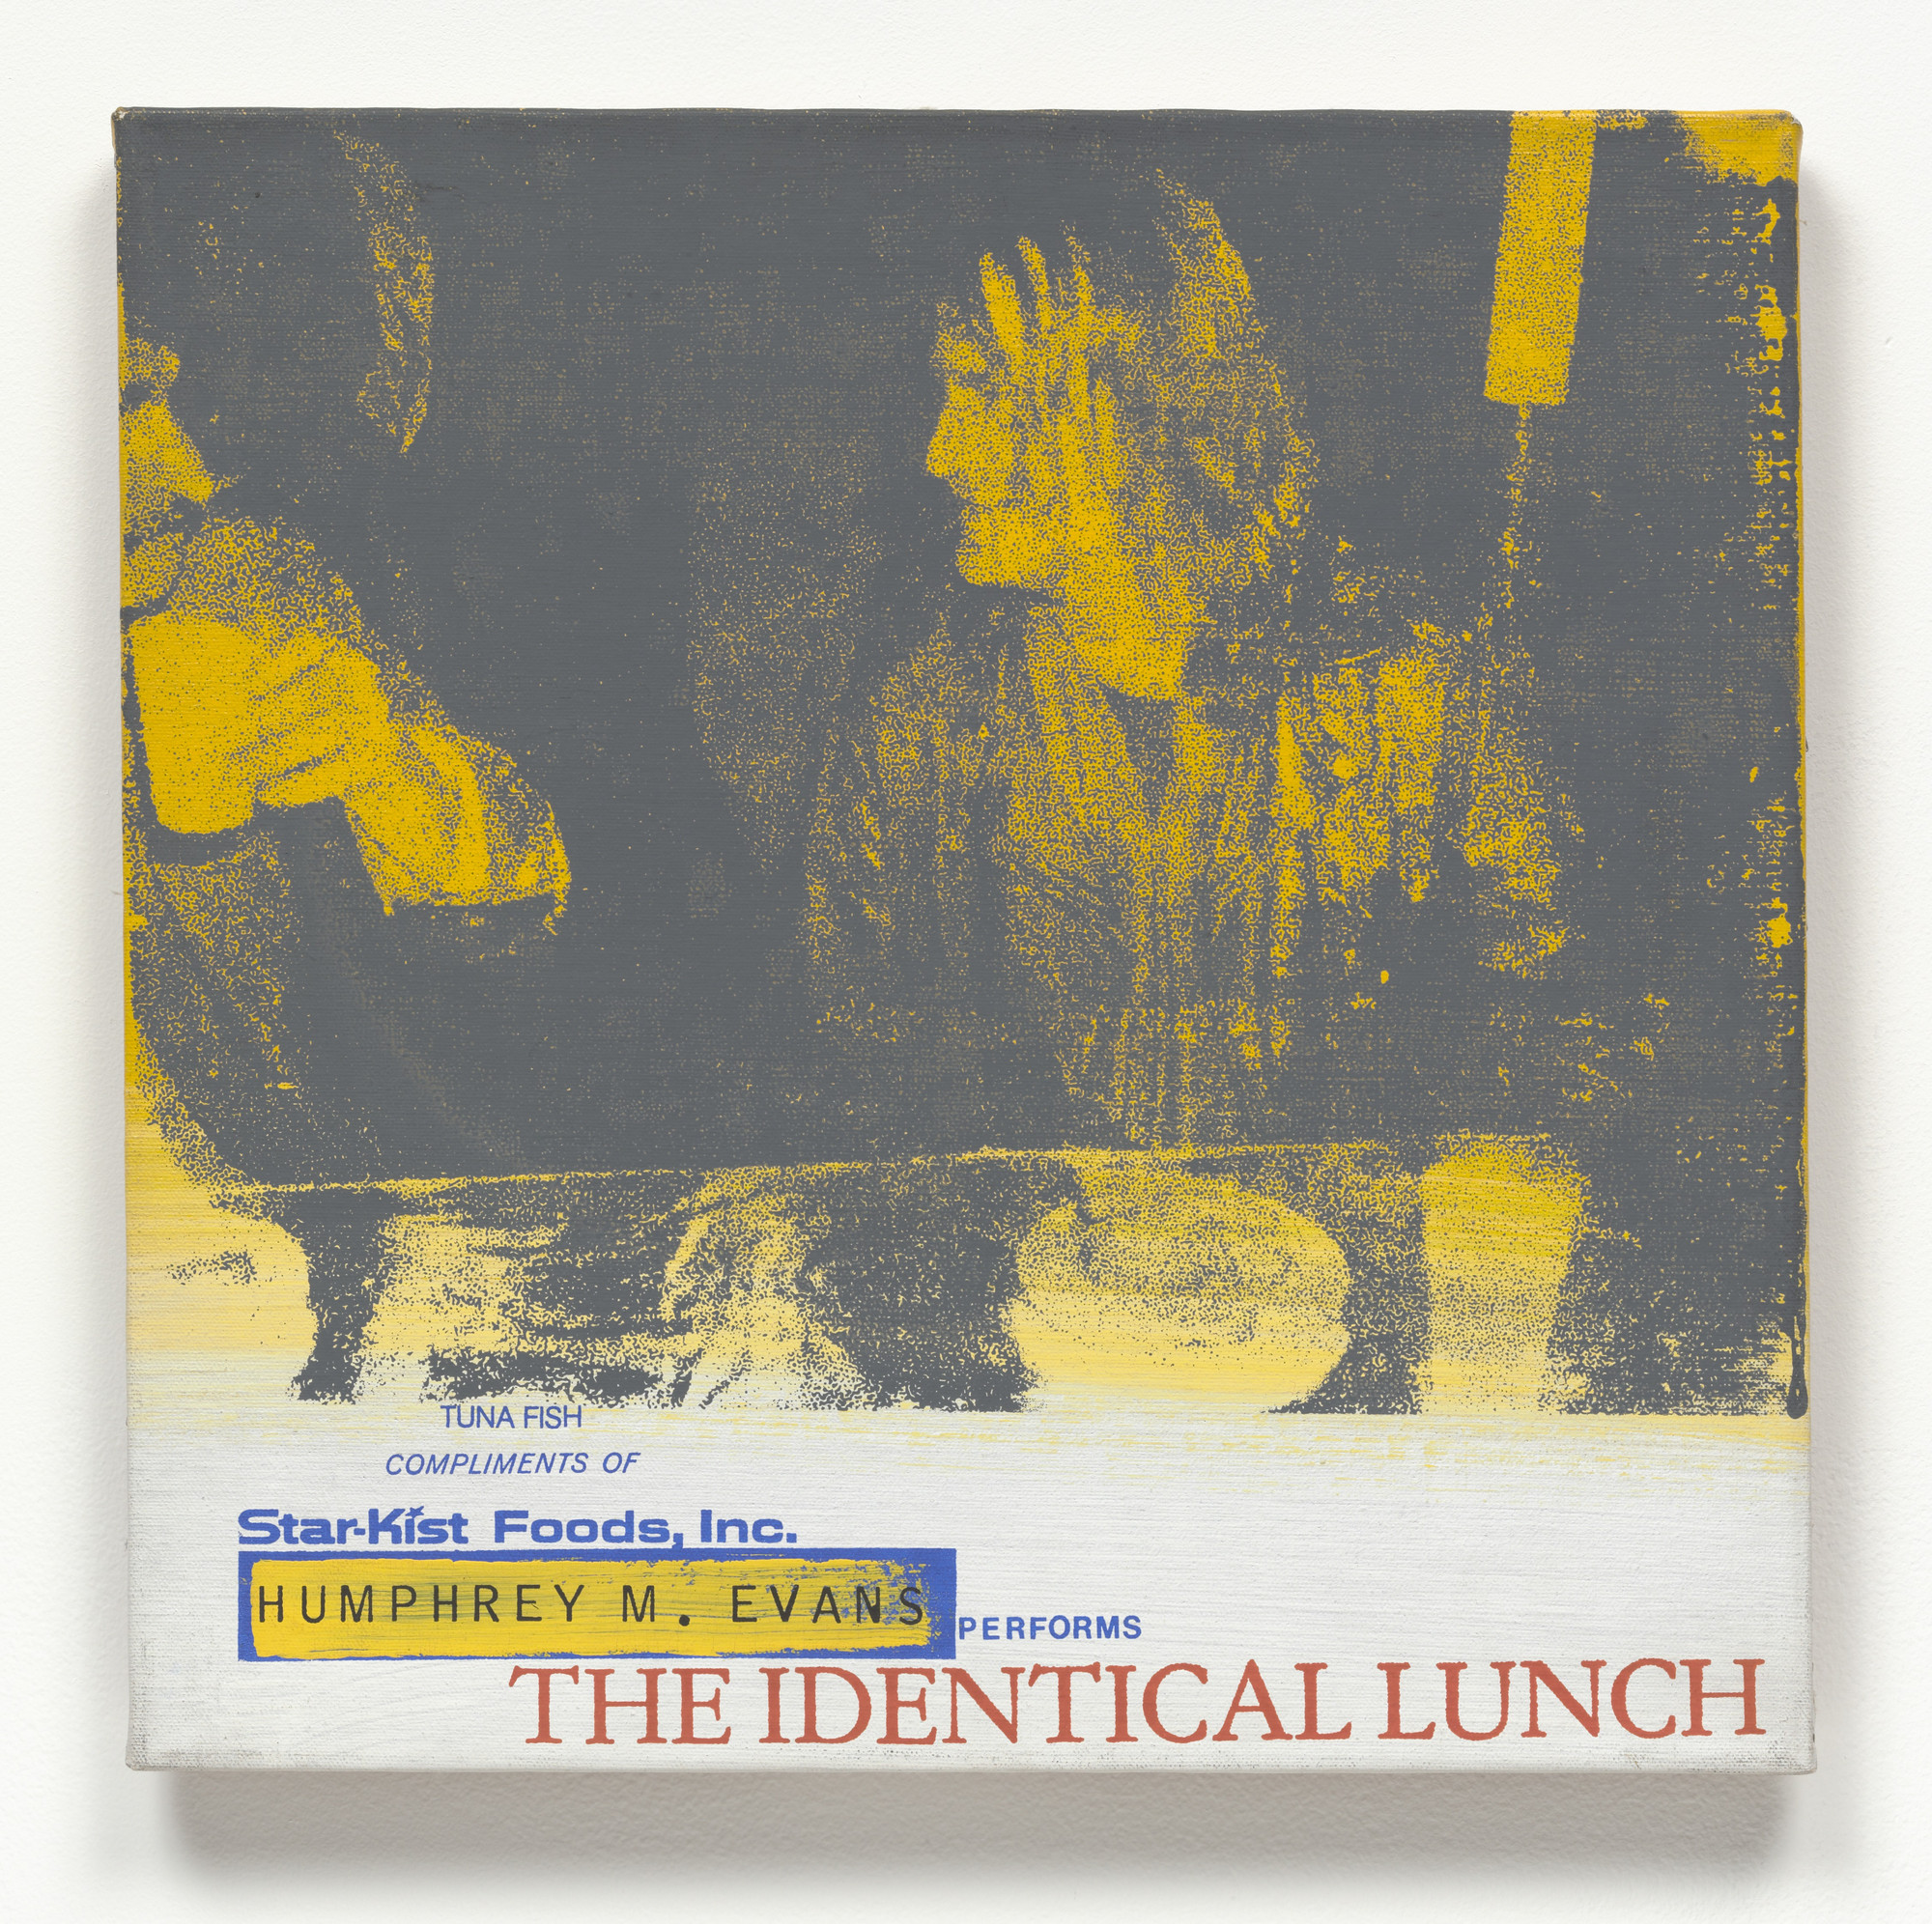 Alison Knowles. Humphrey M. Evans Performs The Identical Lunch. 1969, realized 1973